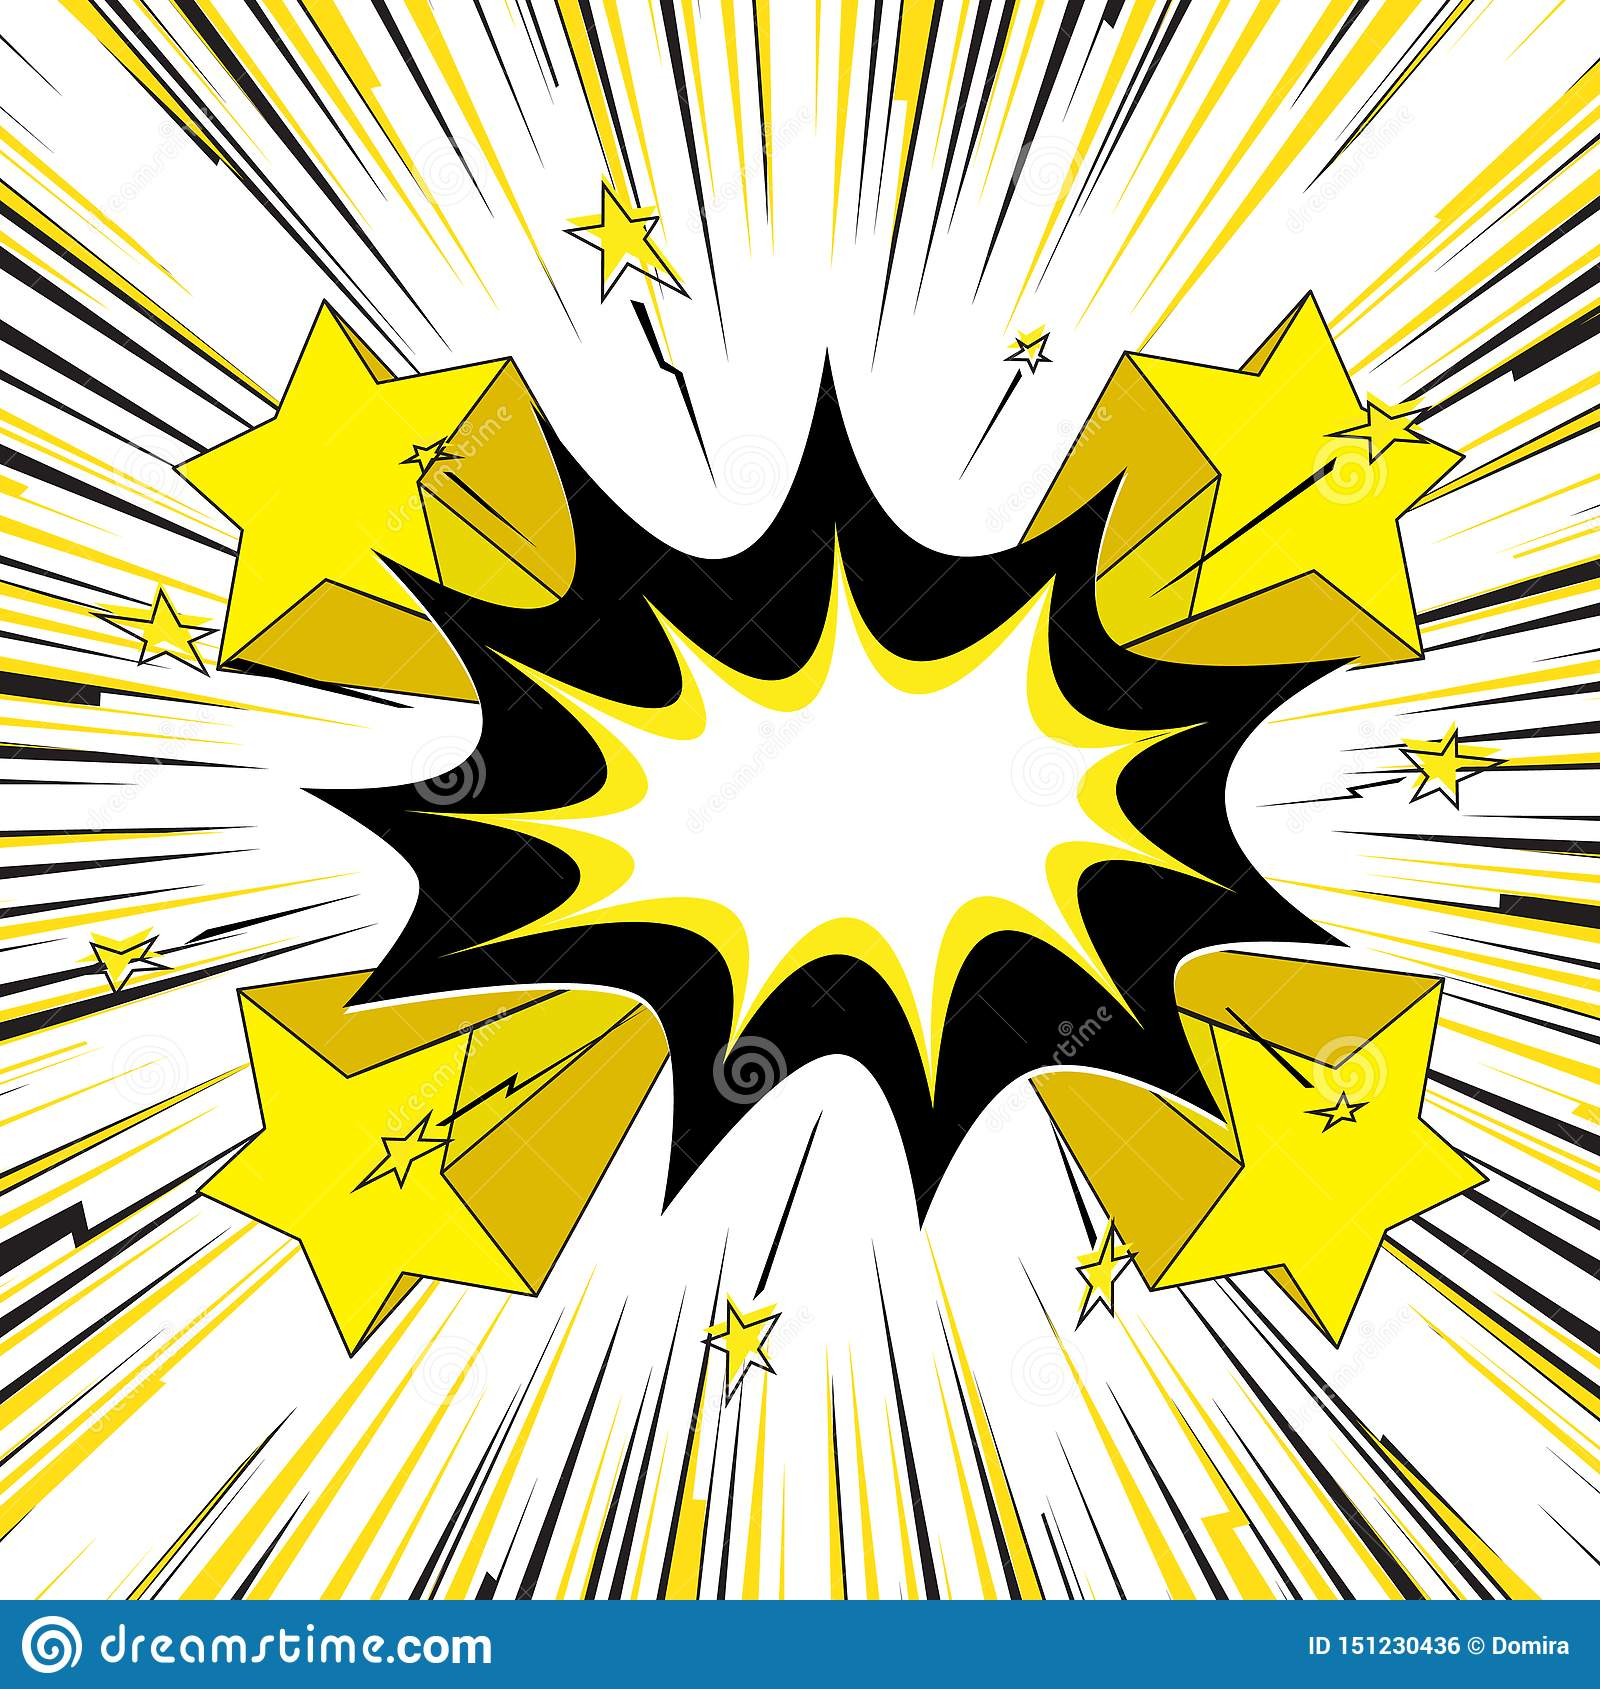 Blank Speech Bubble Speed Lines With Effect Explosion Retro Effect Motion Lines For Comic Book And Manga Pop Art Stock Vector Illustration Of Perspective Motion 151230436 Speech balloon comics text, comics speech bubble, blank bobble text, comics, angle, text png. https www dreamstime com blank speech bubble speed lines effect explosion retro motion comic book manga pop art colorful center frame image151230436